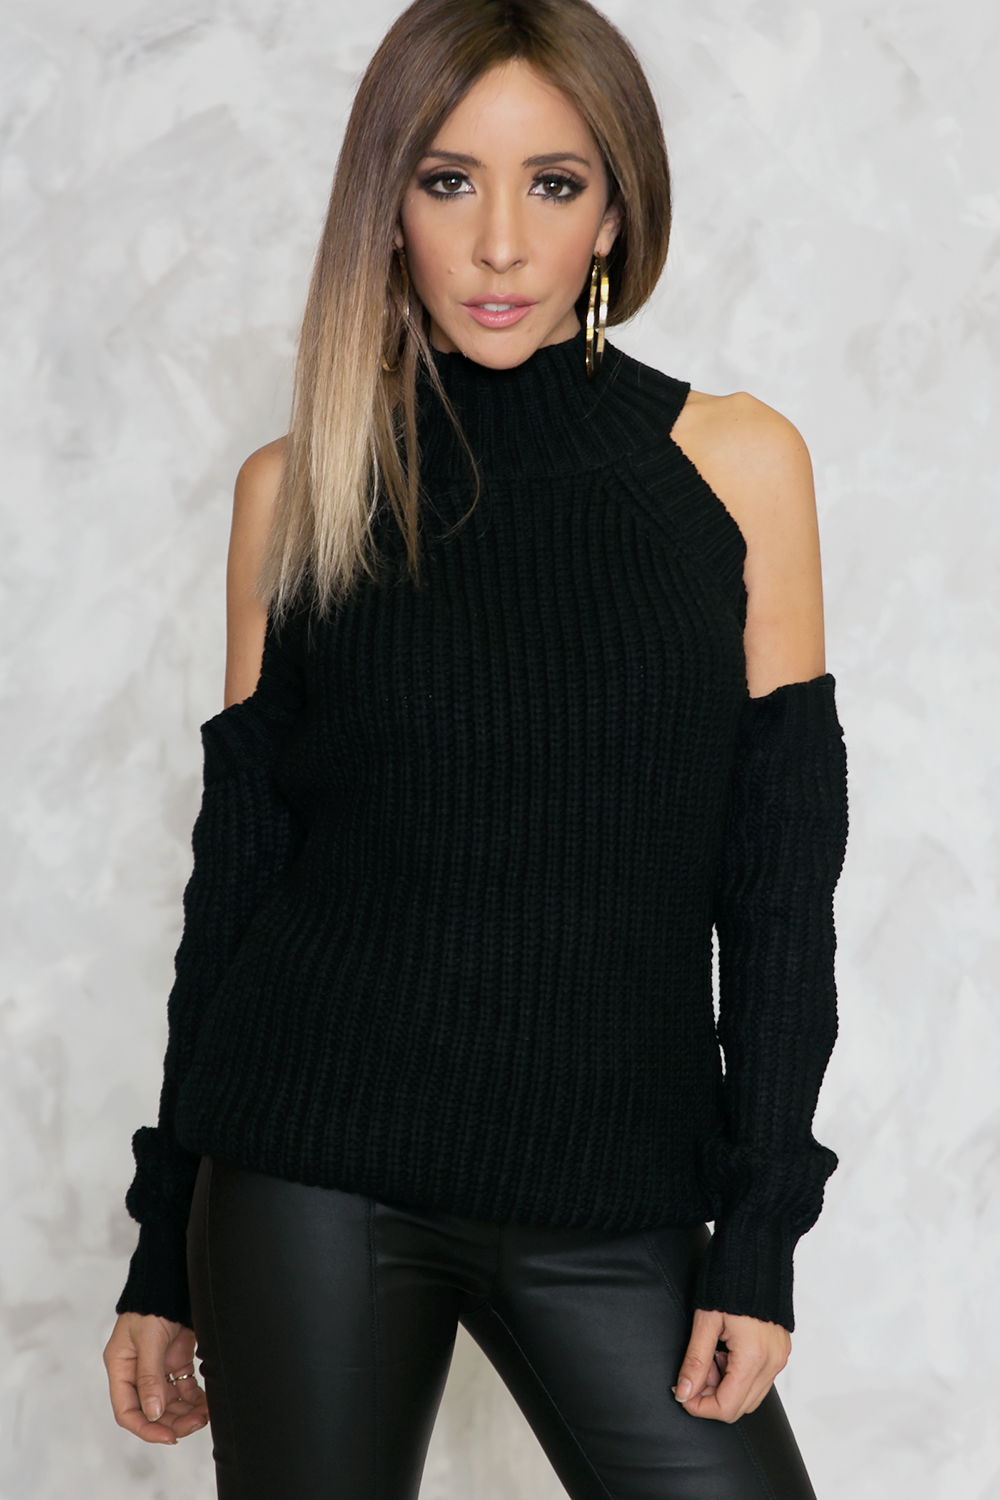 Jagged Edges Cutout Sweater – Haute & Rebellious